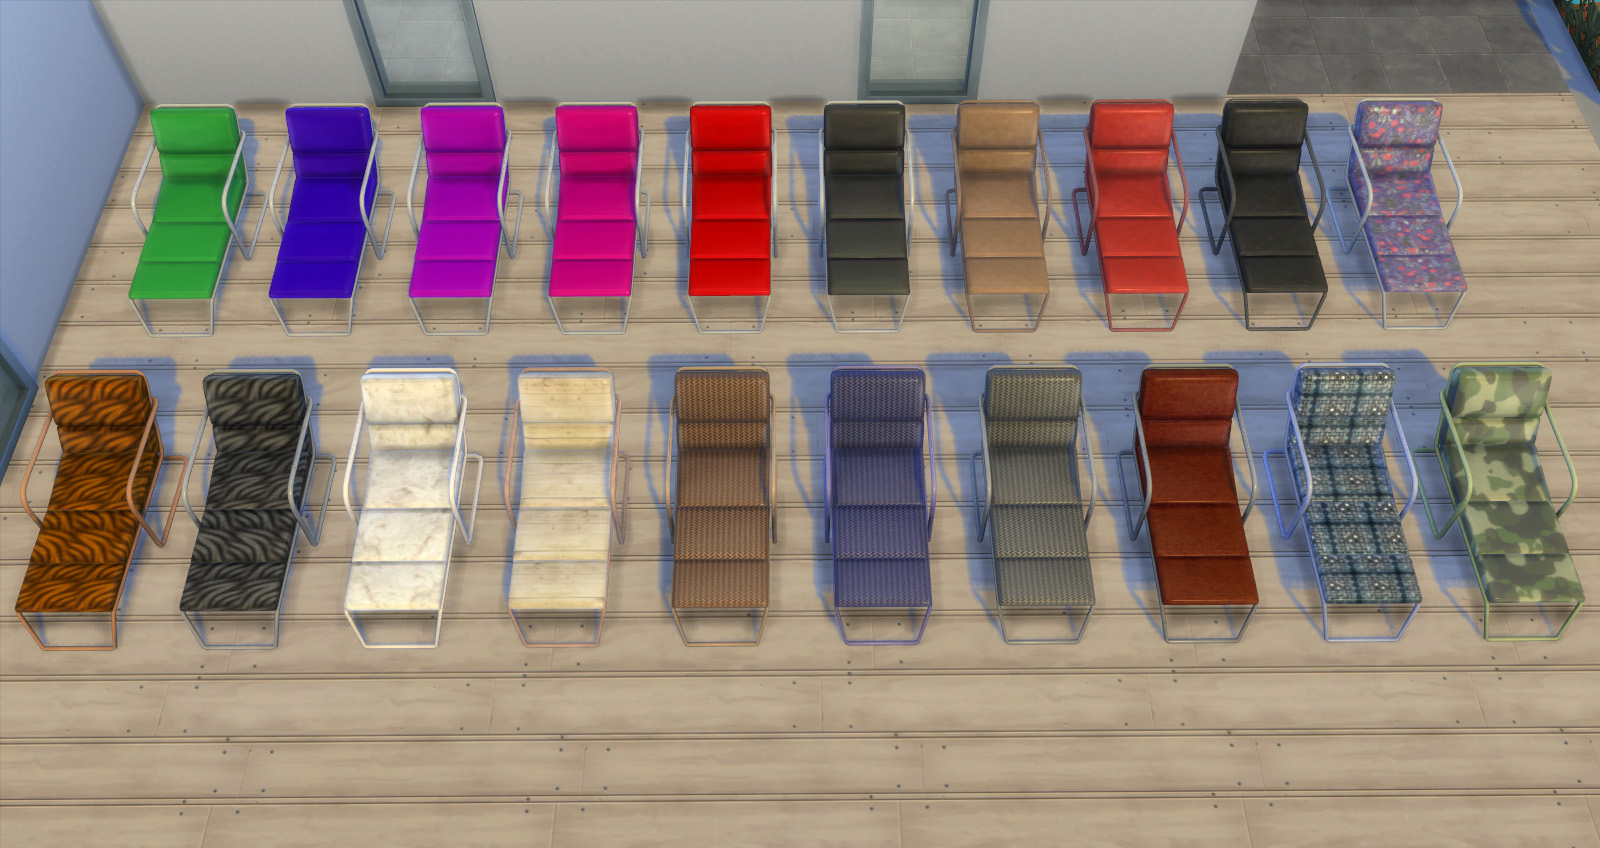 Hanging Chair The Sims 4 Circle Target My Blog Functional Lounge By Esmeralda